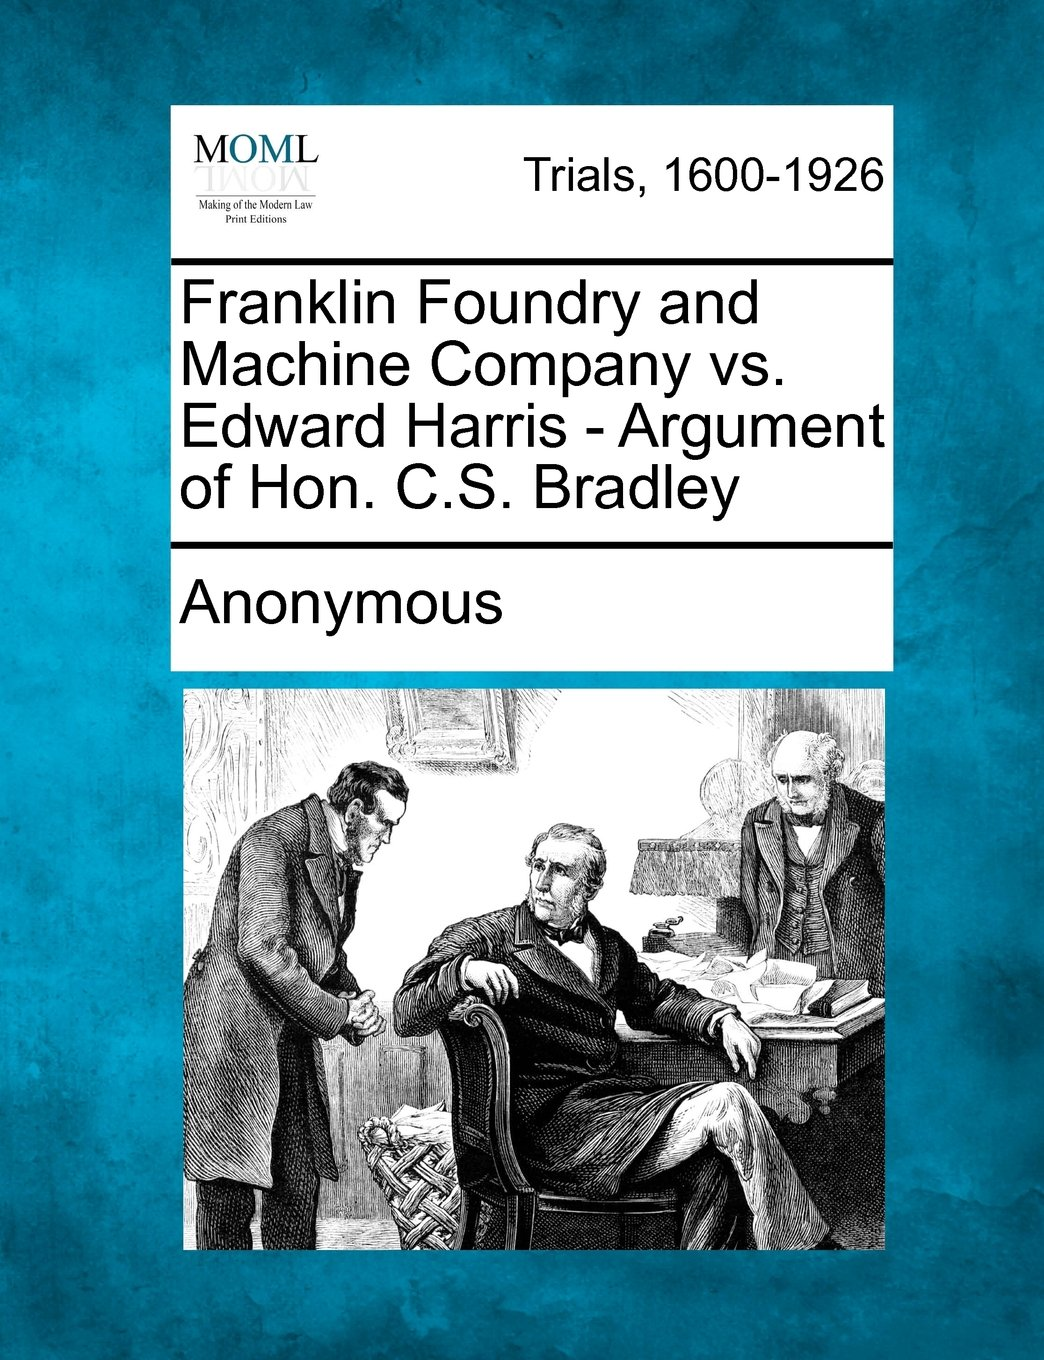 Download Franklin Foundry and Machine Company vs. Edward Harris - Argument of Hon. C.S. Bradley ebook